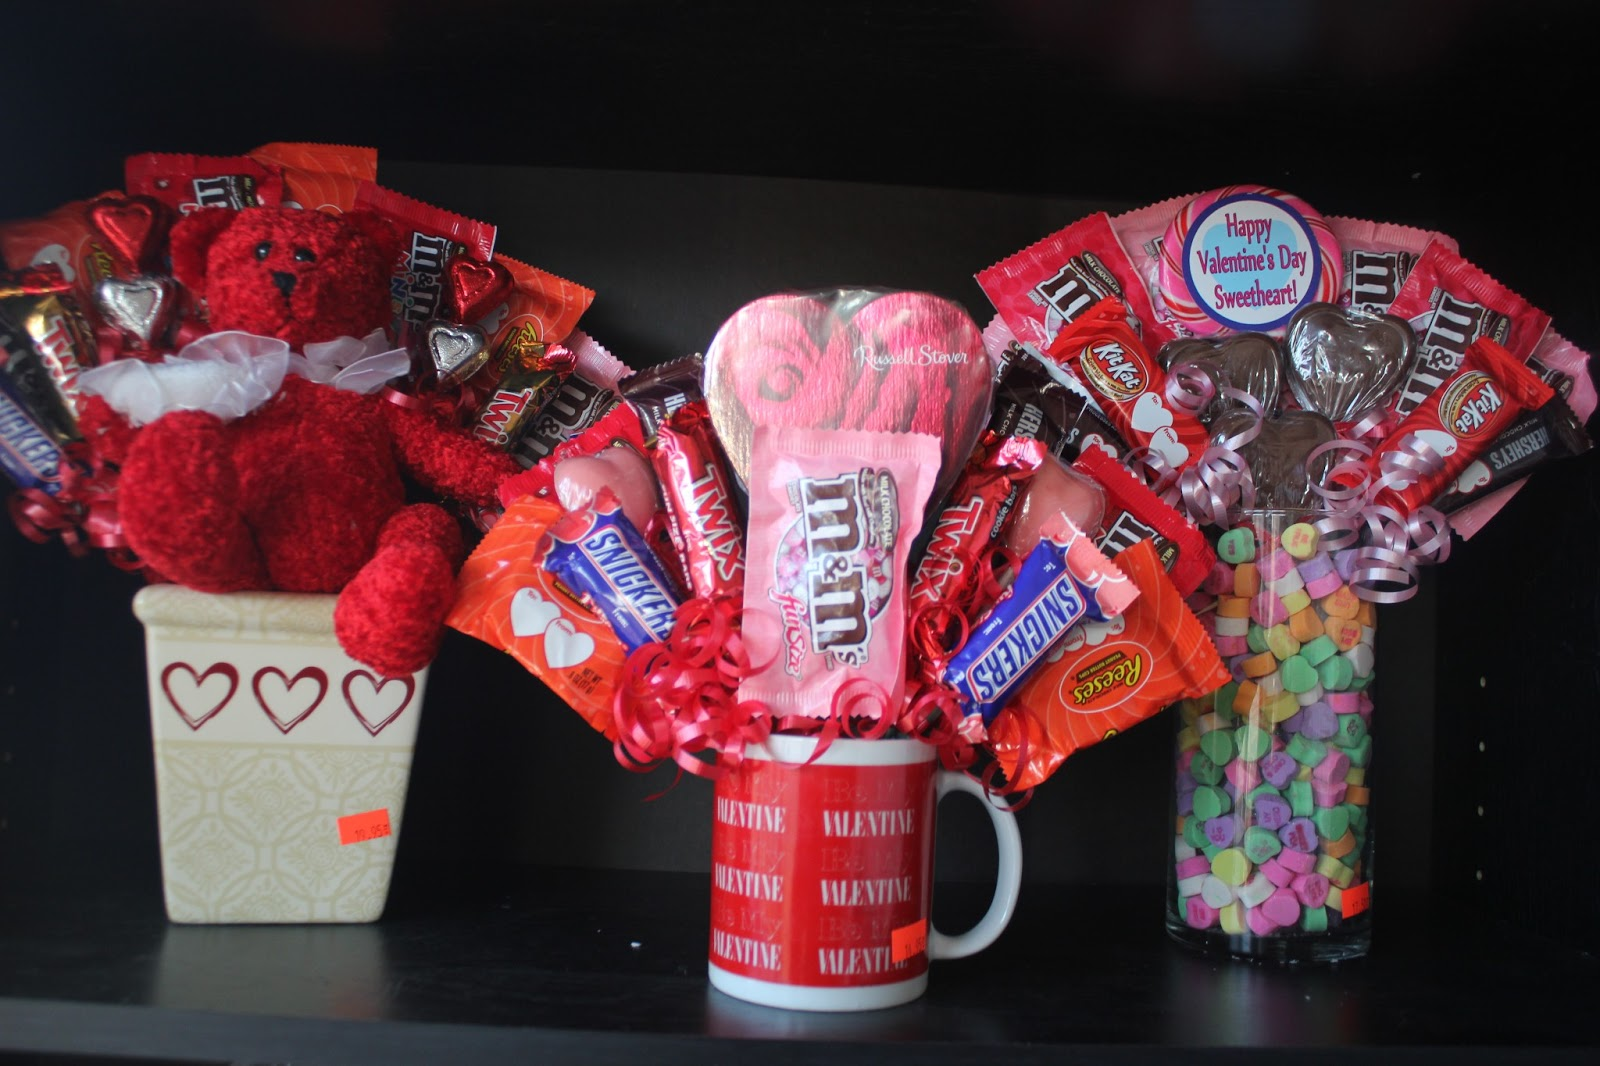 Then, I Stopped By Walmart And Bought Some Of The Big Bags Of Valentineu0027s  Candy. You Can Use Regular Fun Size Bars, But I Like The Colors And Designs  That ...